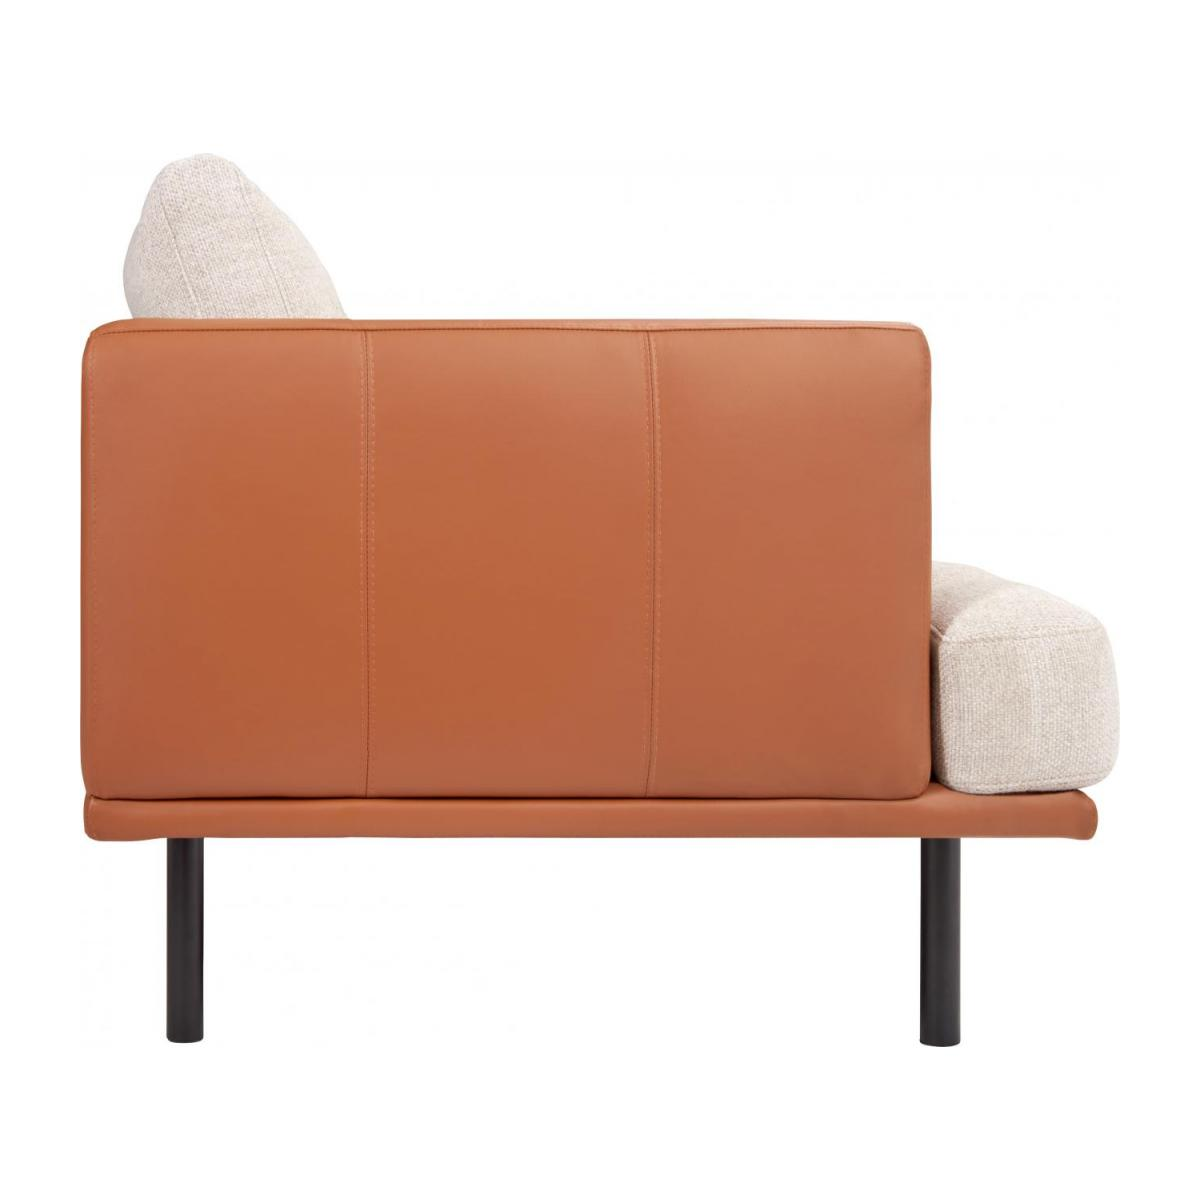 3 seater sofa in Fasoli fabric, snow white with base and armrests in brown leather n°5